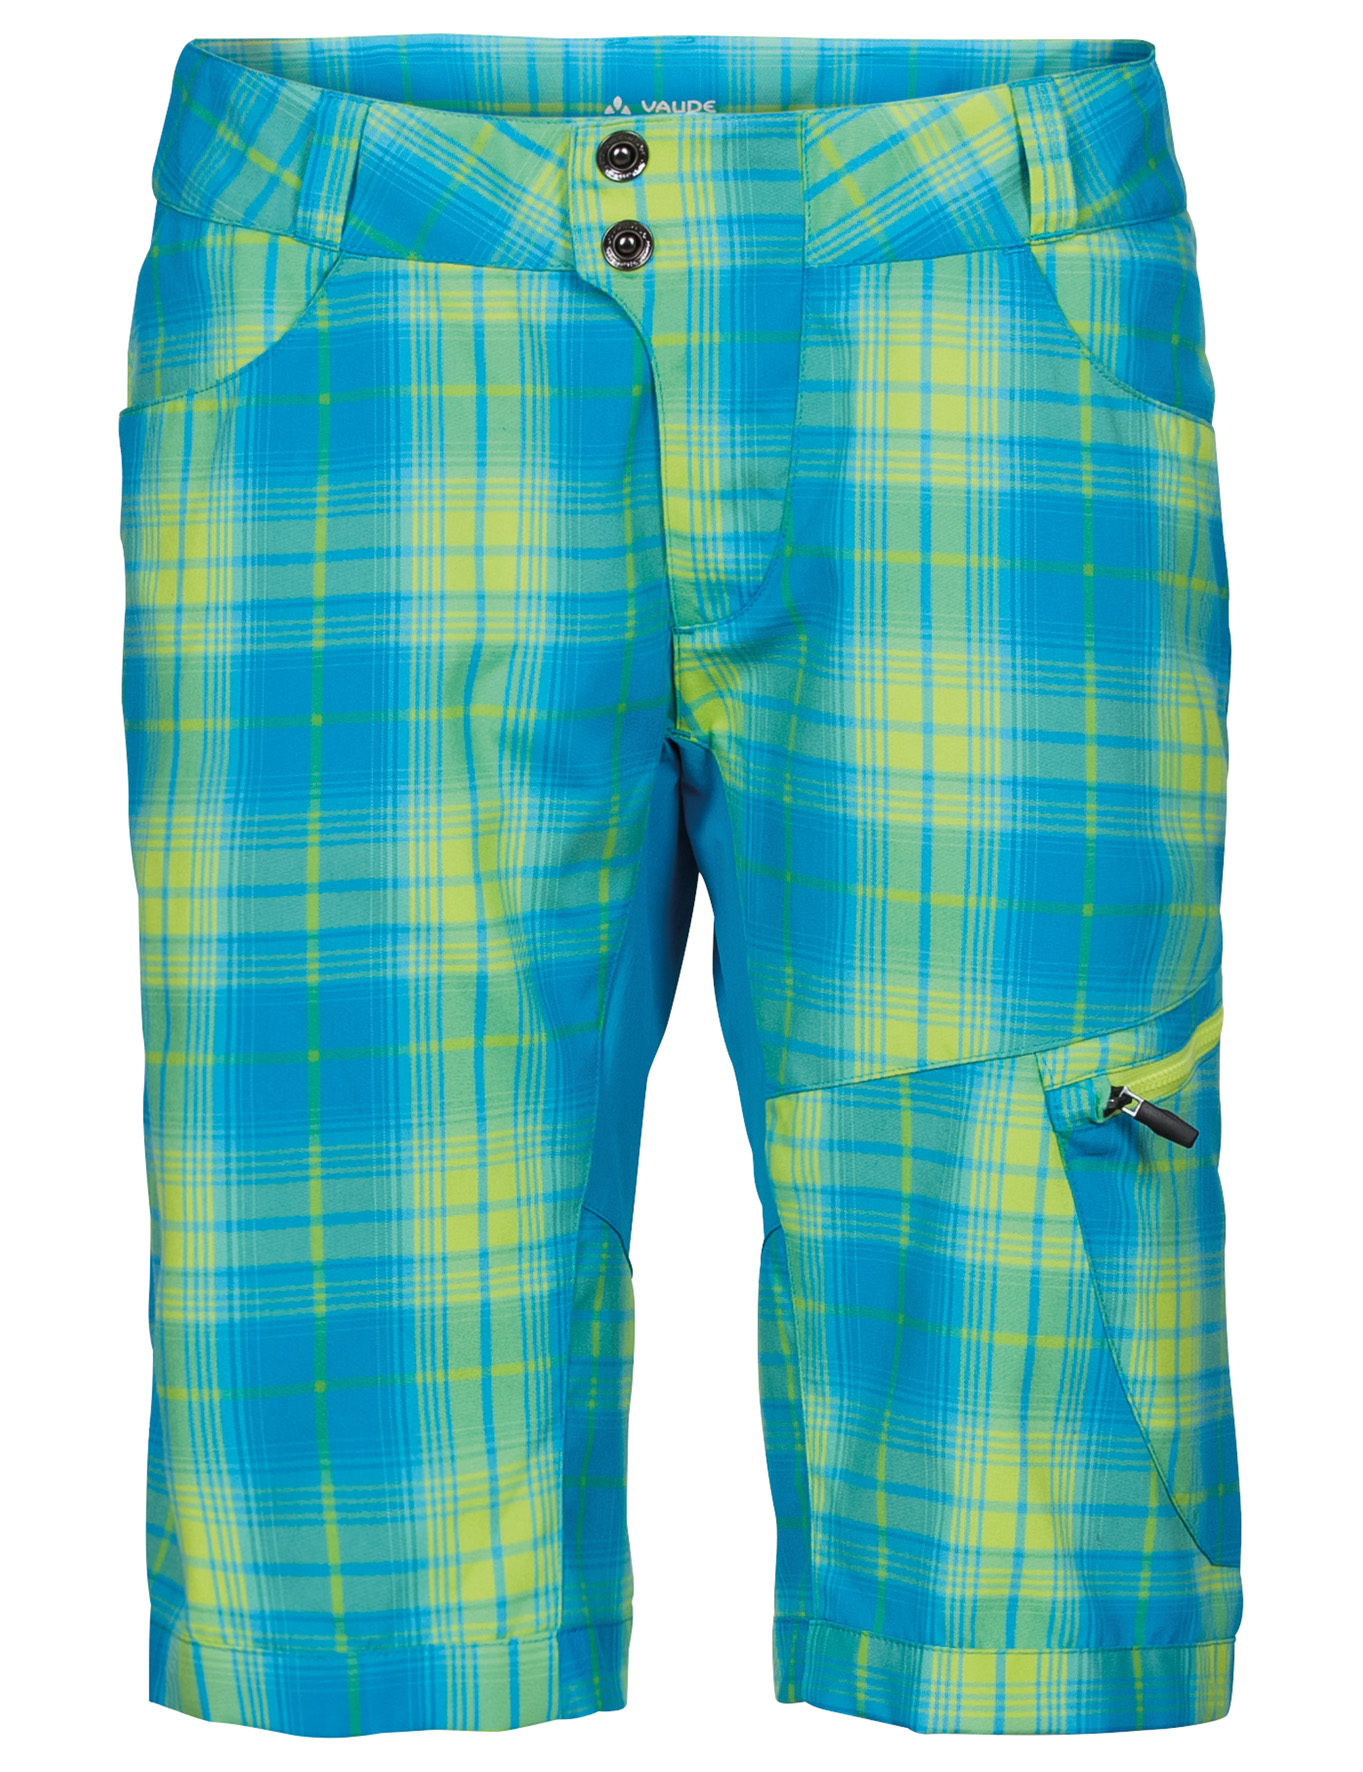 VAUDE Women´s Craggy Pants II spring blue Größe 34 - schneider-sports